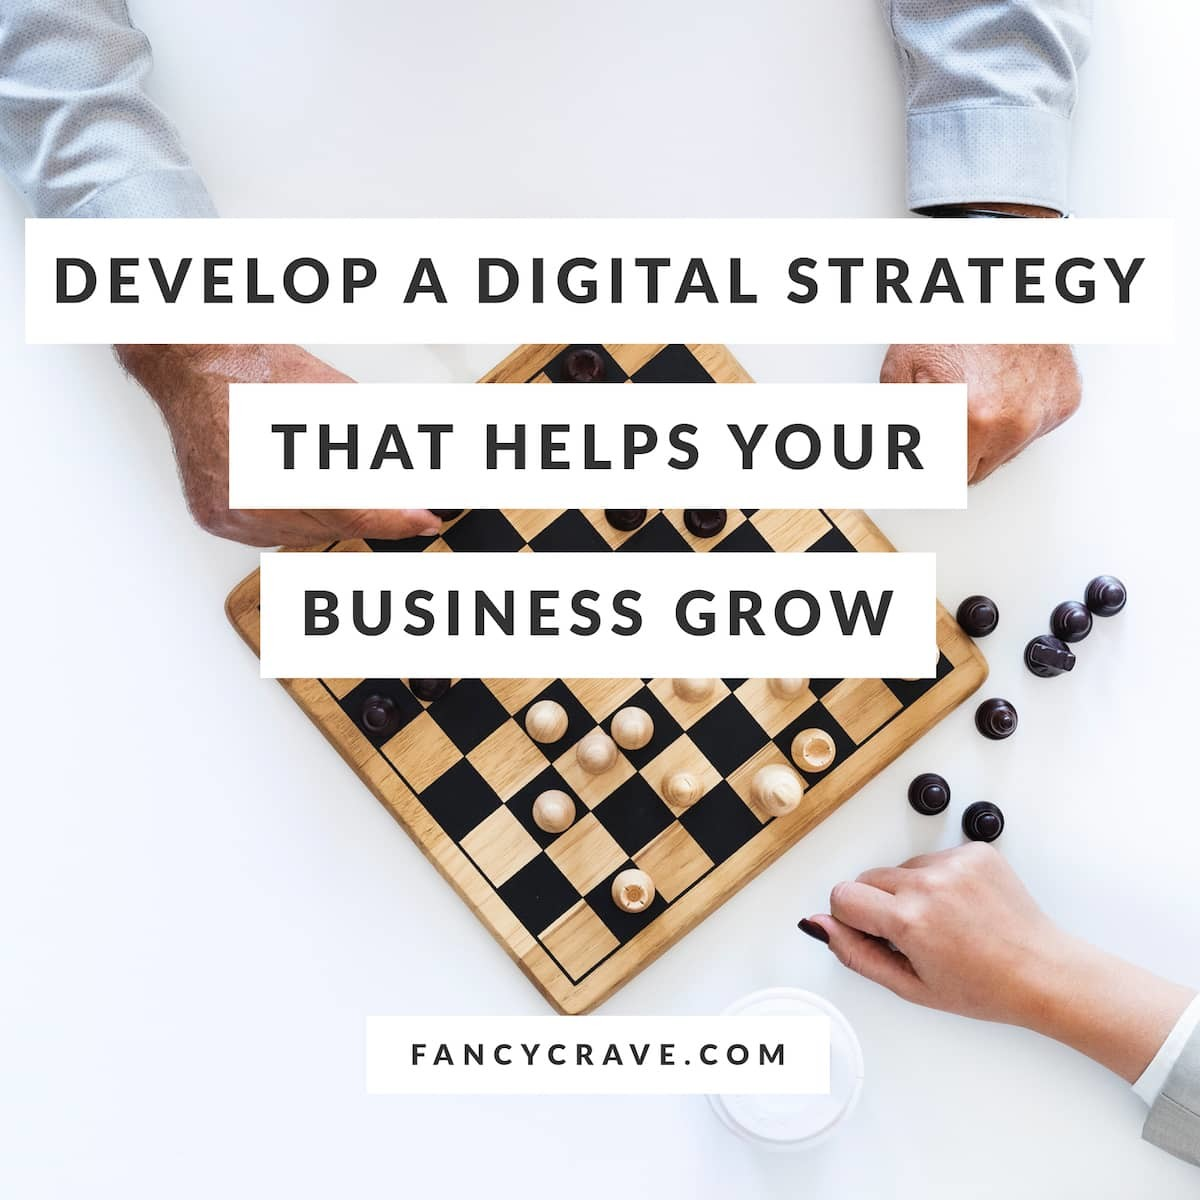 How to Develop a Digital Strategy That Helps Your Business Grow